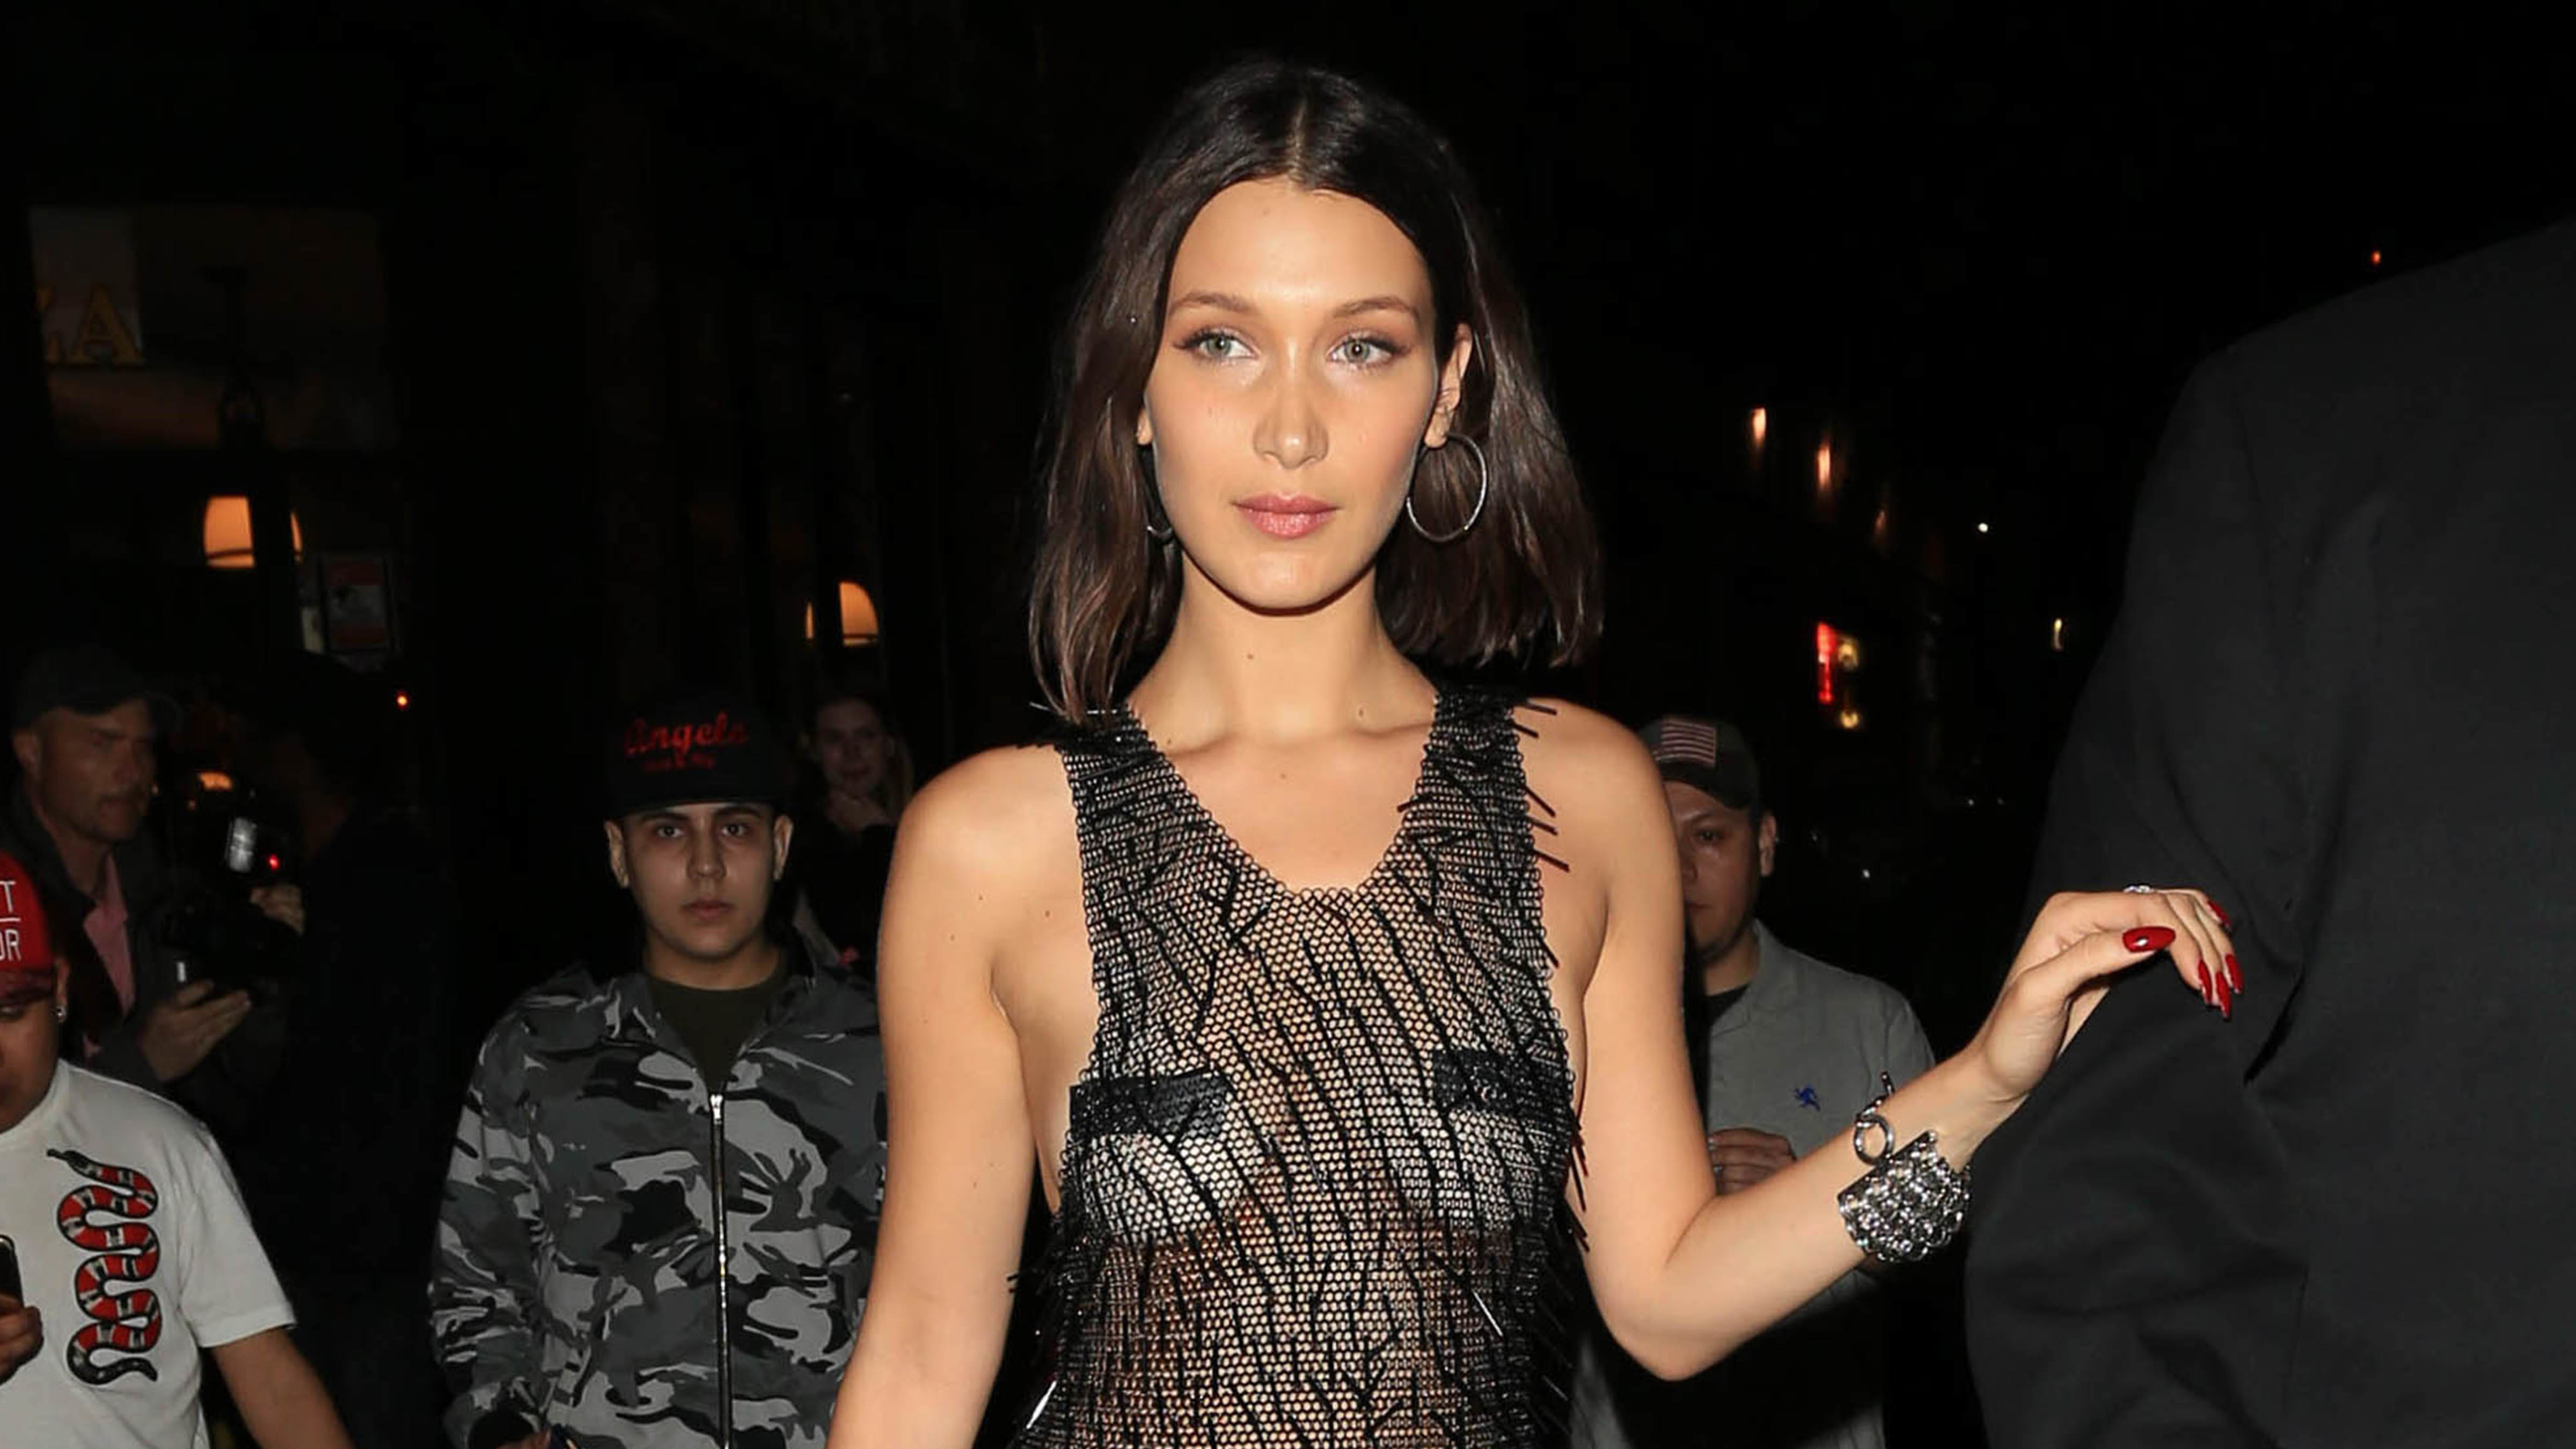 Bella Hadid Channeled Princess Leia, Marge Simpson, and a Giant Snowball in a Single Day at PFW